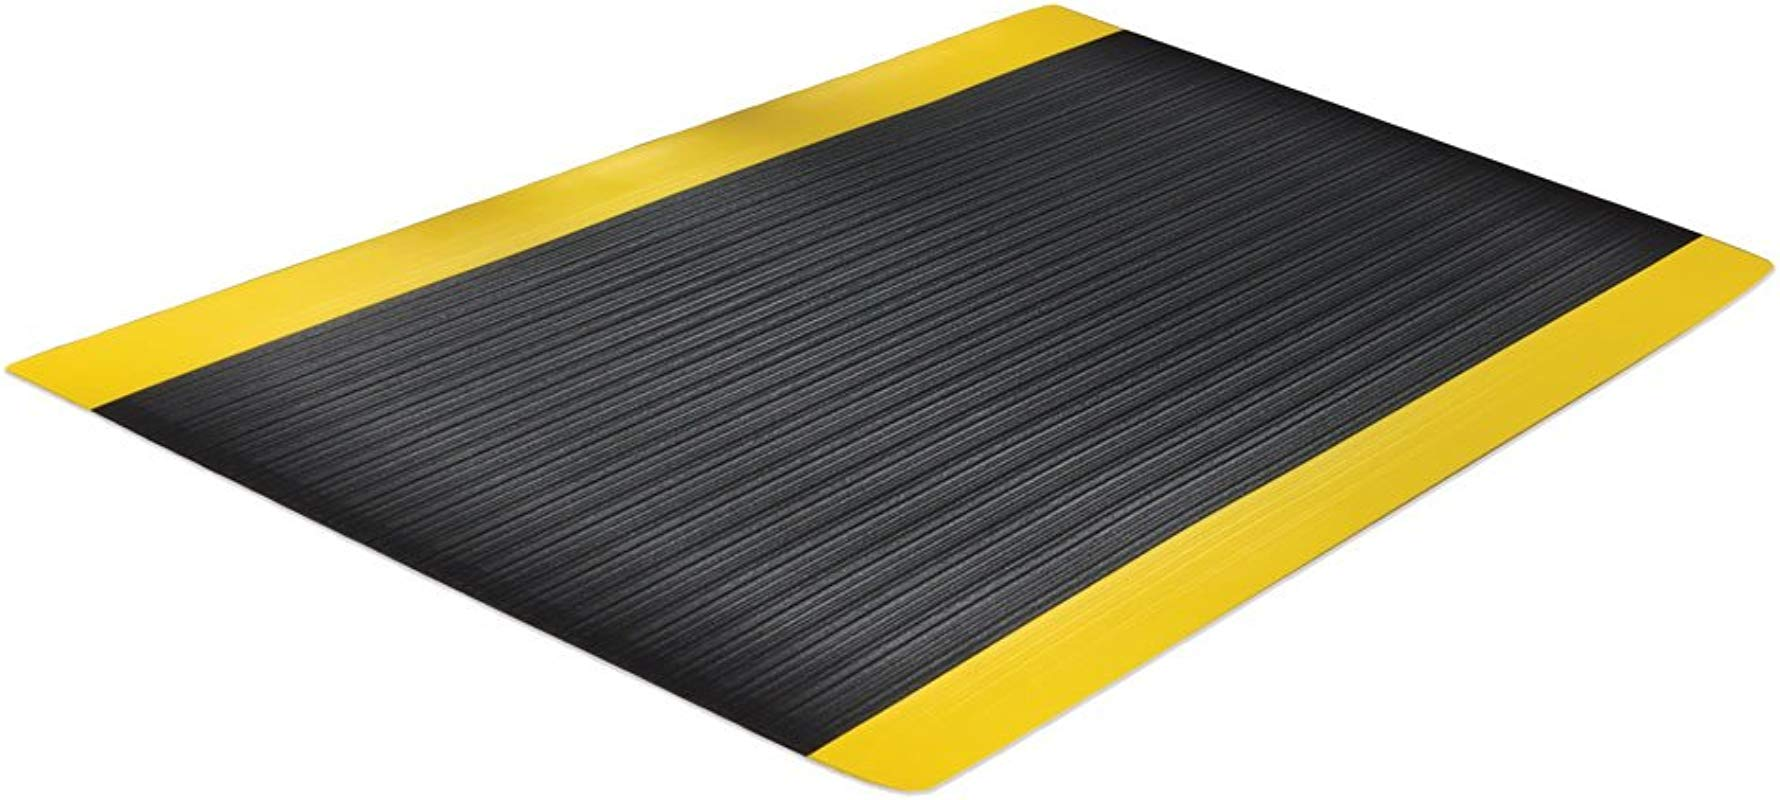 Comfort Step 3 8 Anti Fatigue Mat With Ribbed Emboss Black With Yellow Border 3 X 5